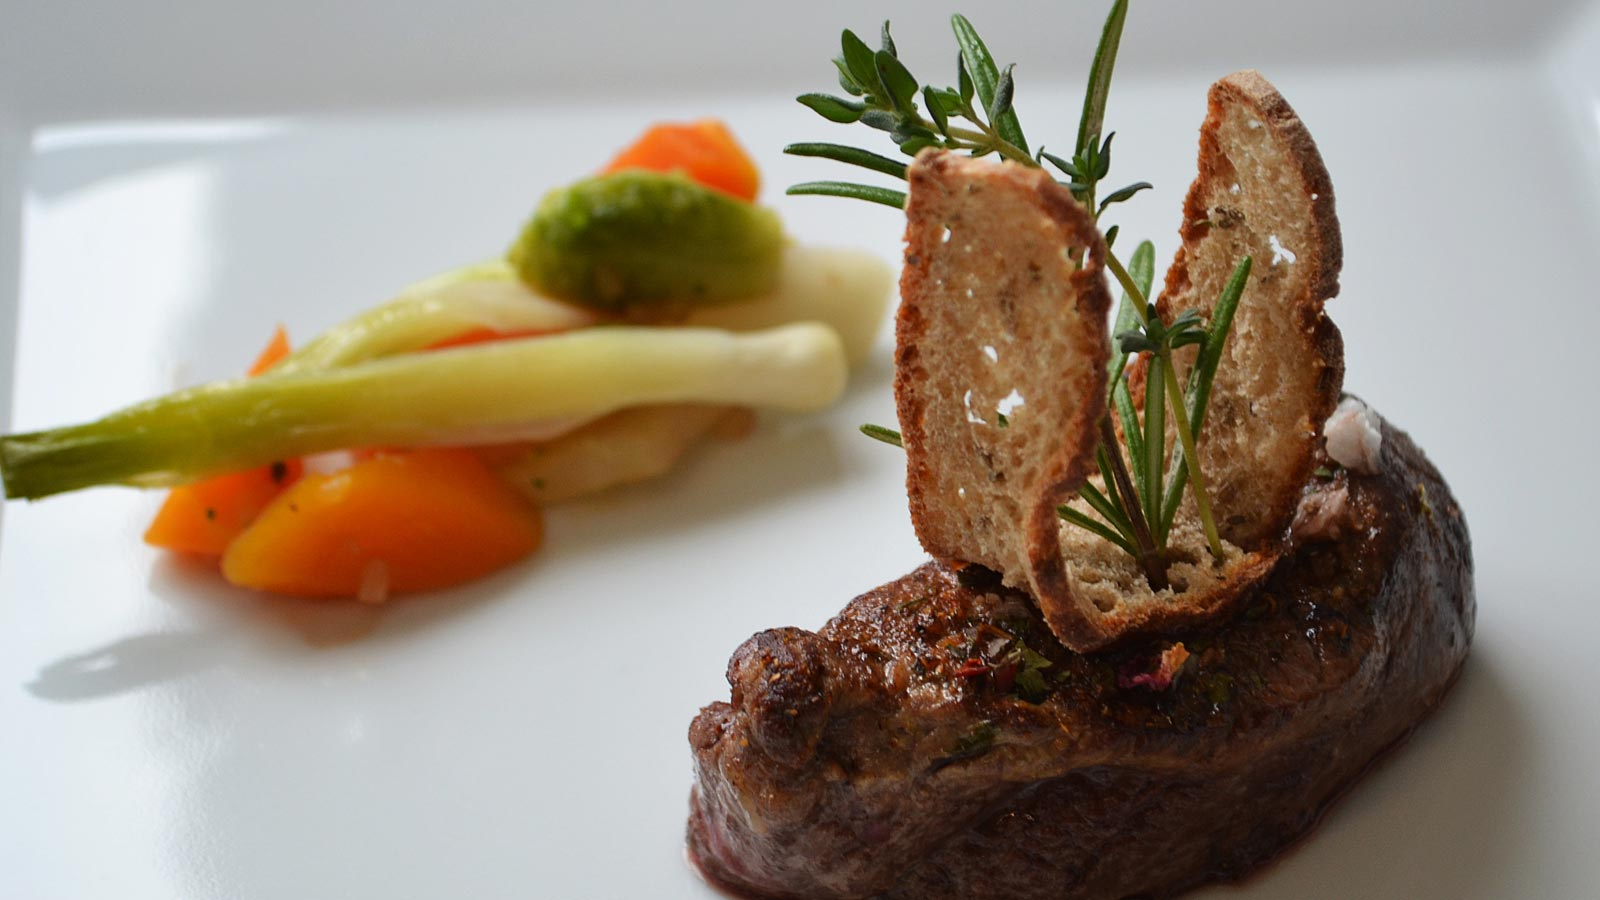 Luxury services travel guide for island crete greece for Gourmet en cuisine